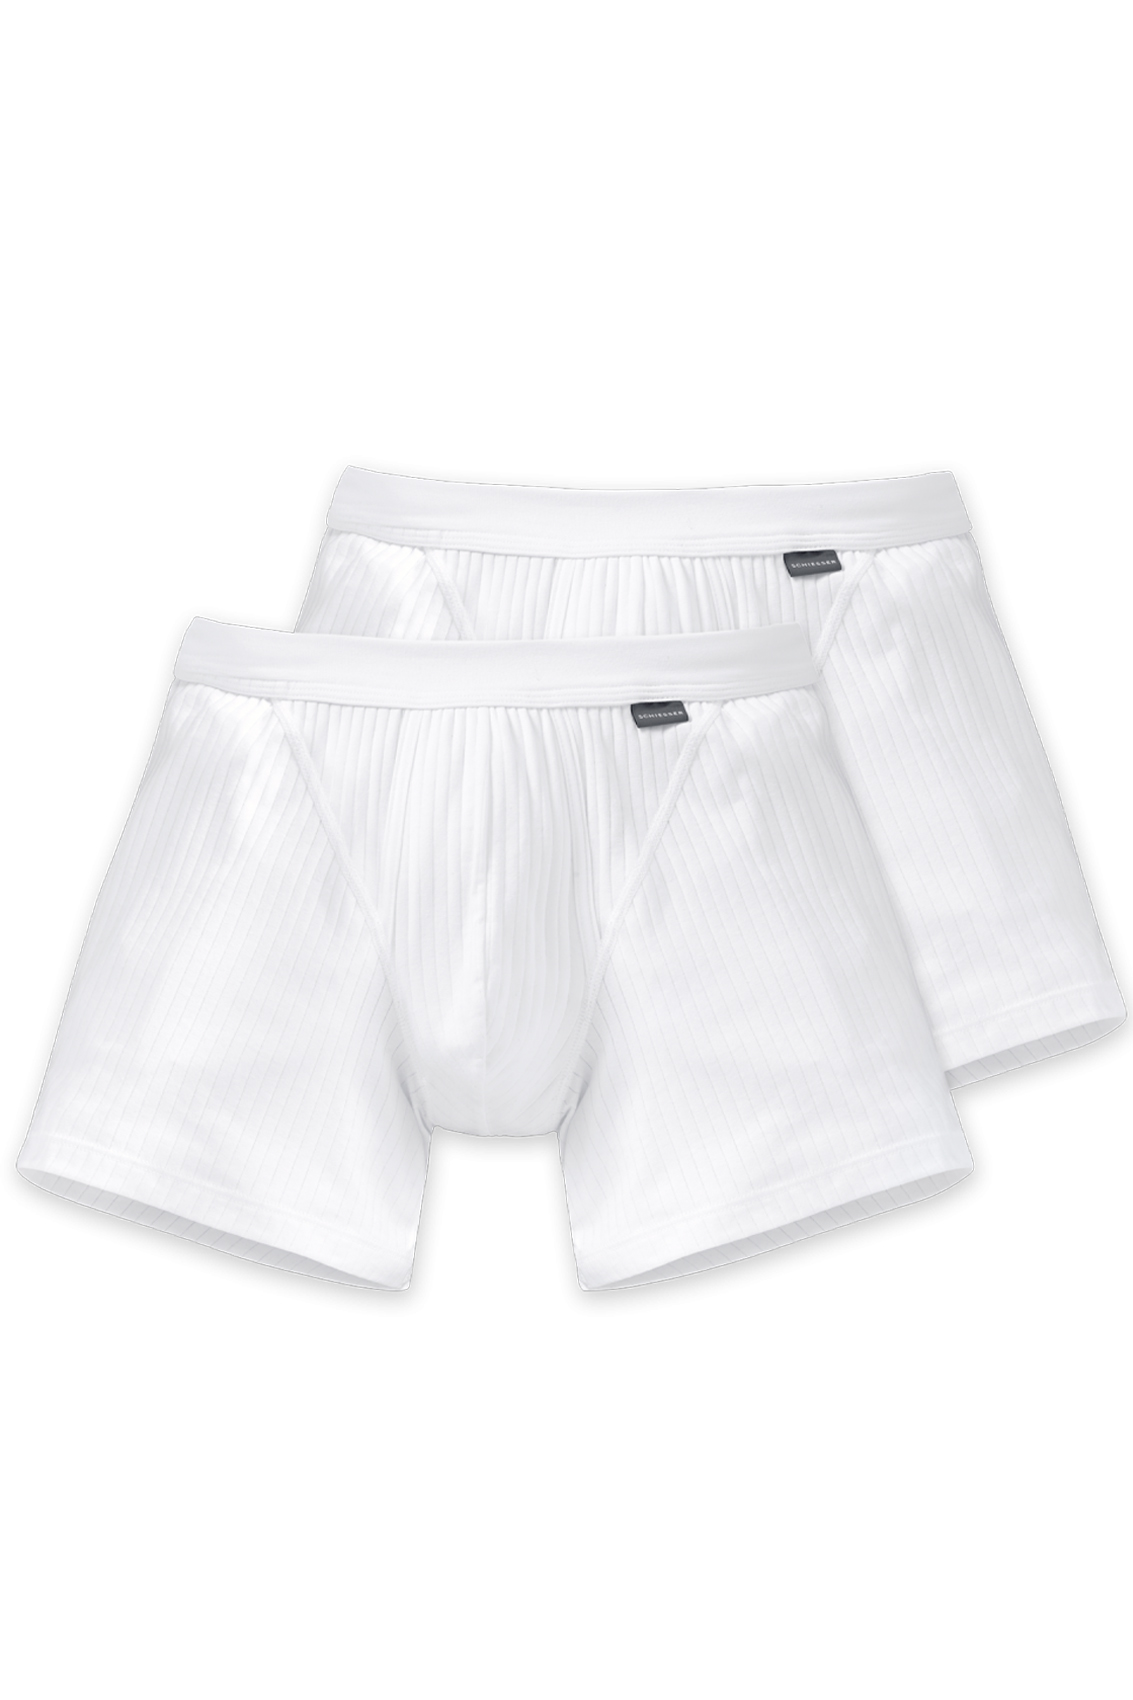 Schiesser boxershort Authentic wit